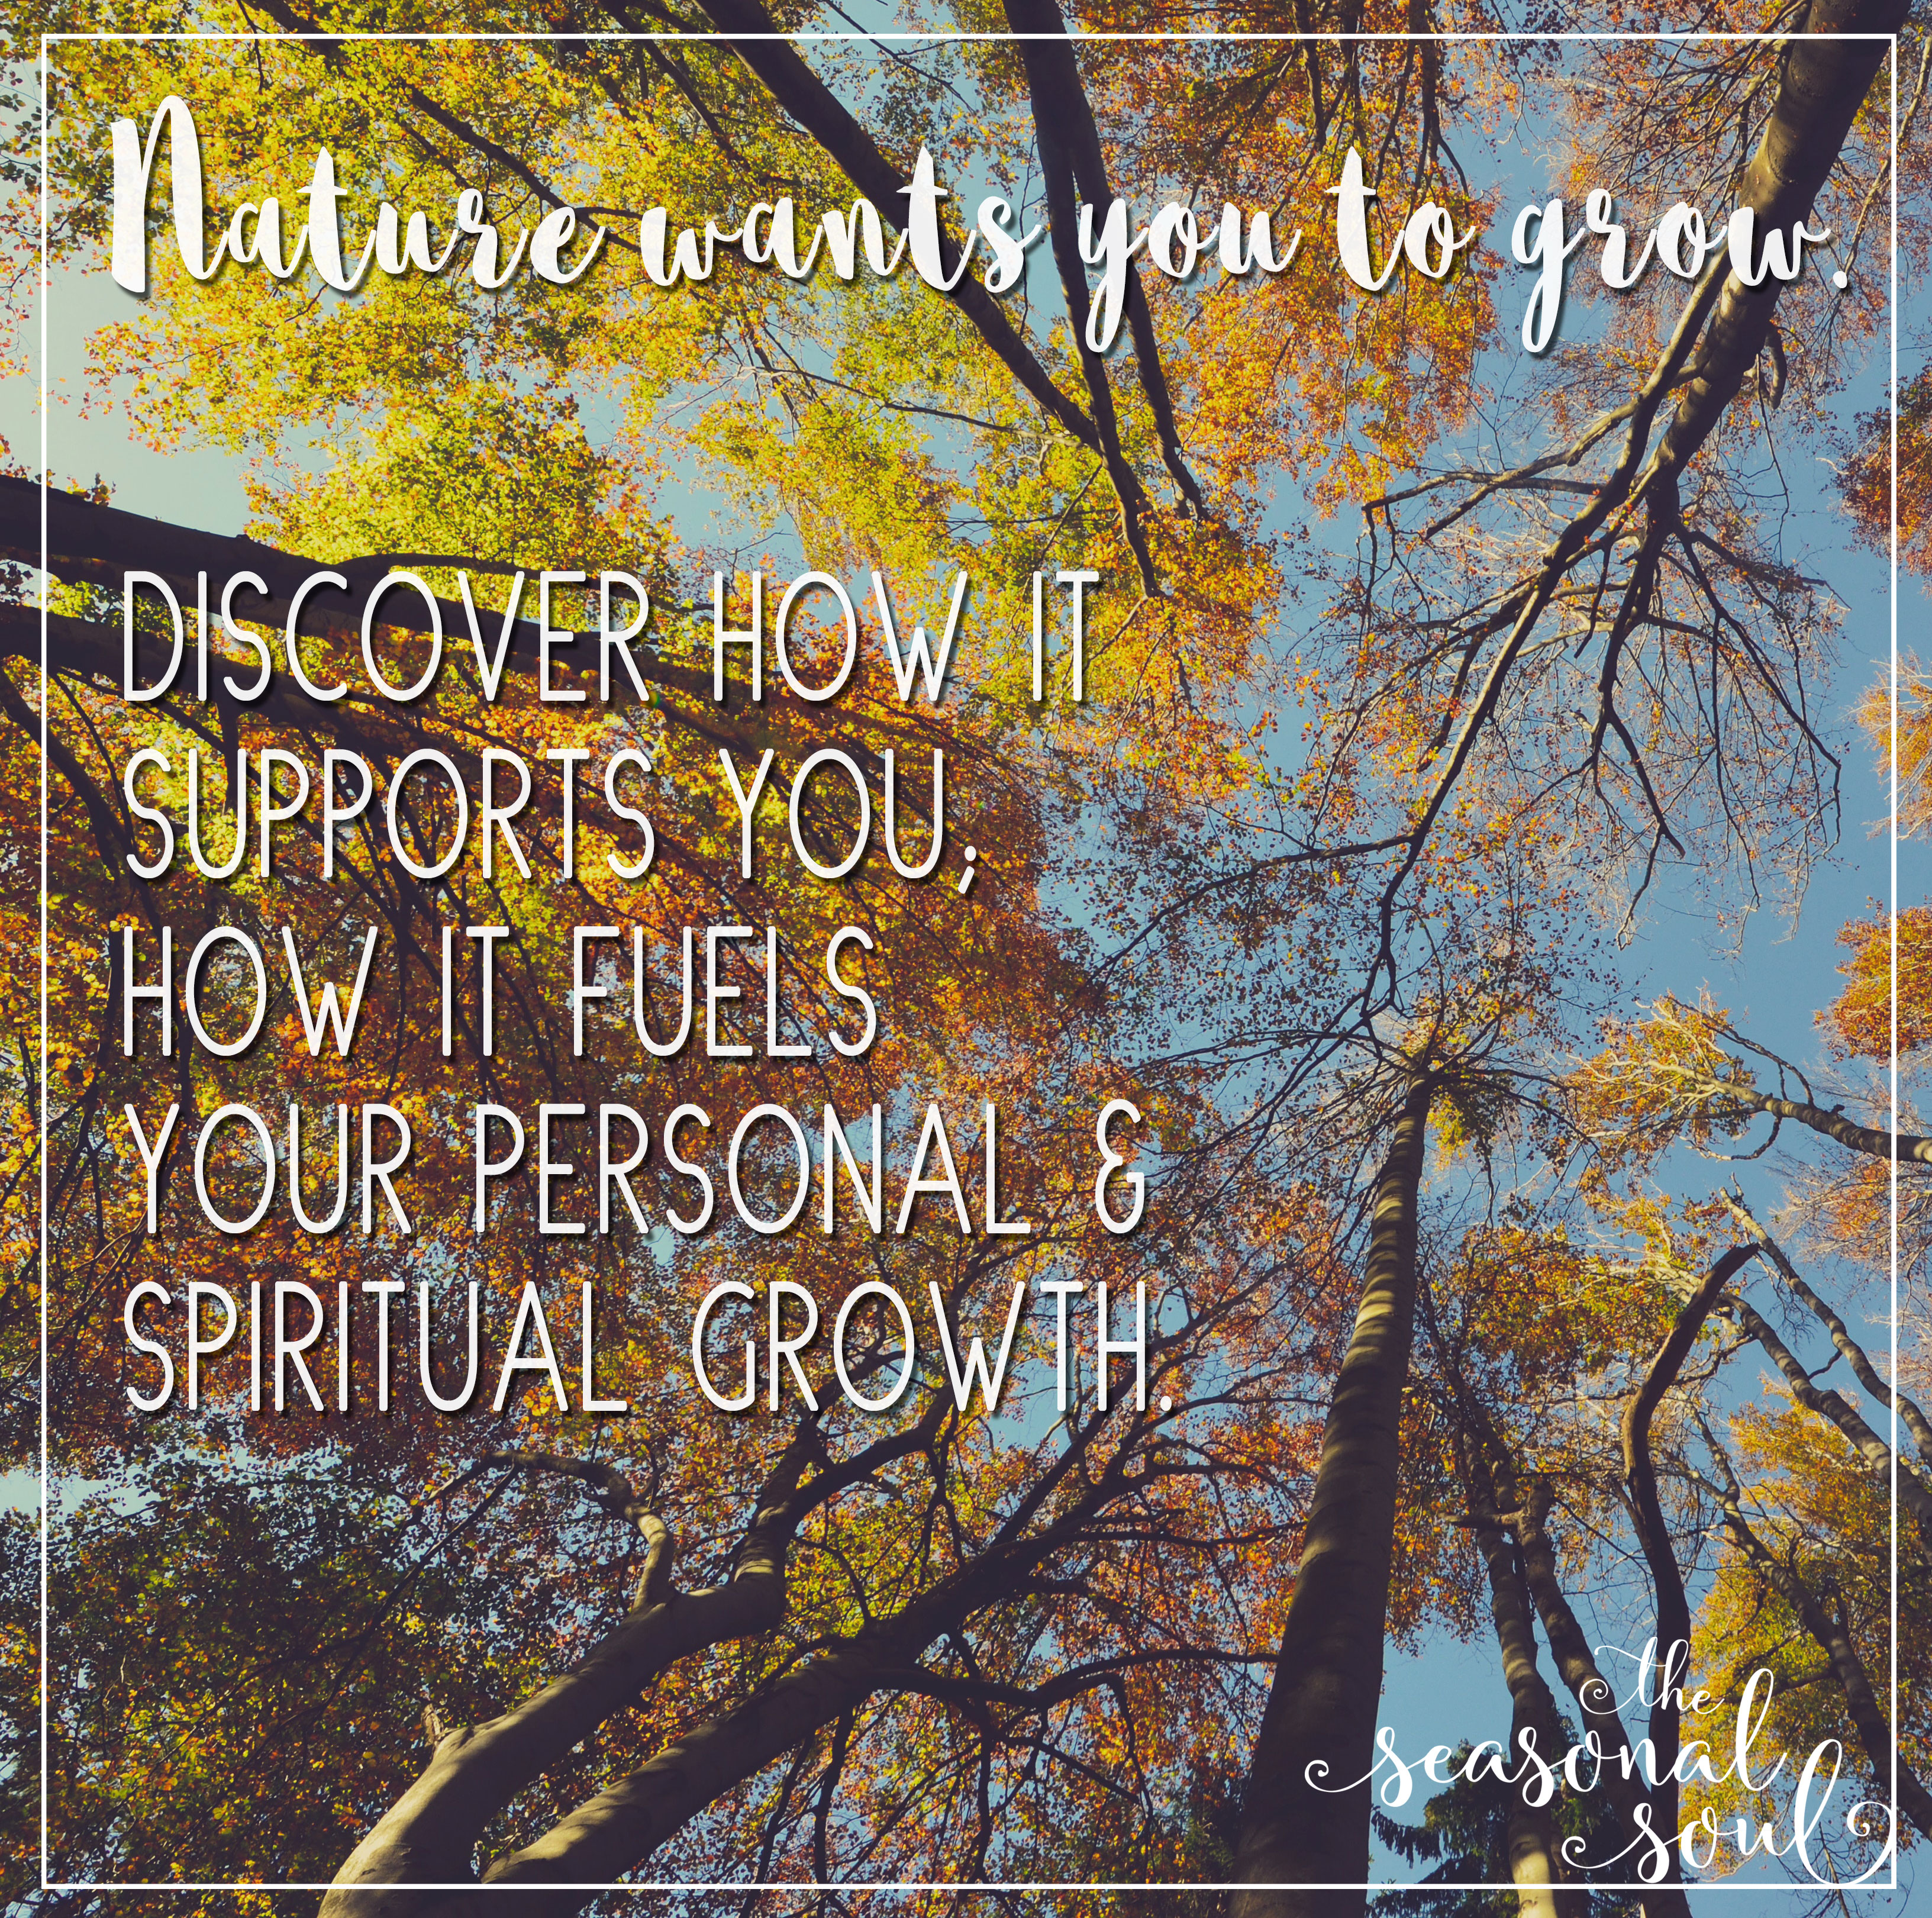 Nature wants you to grow. Discover how it supports you, how it fuels your personal & spiritual growth.